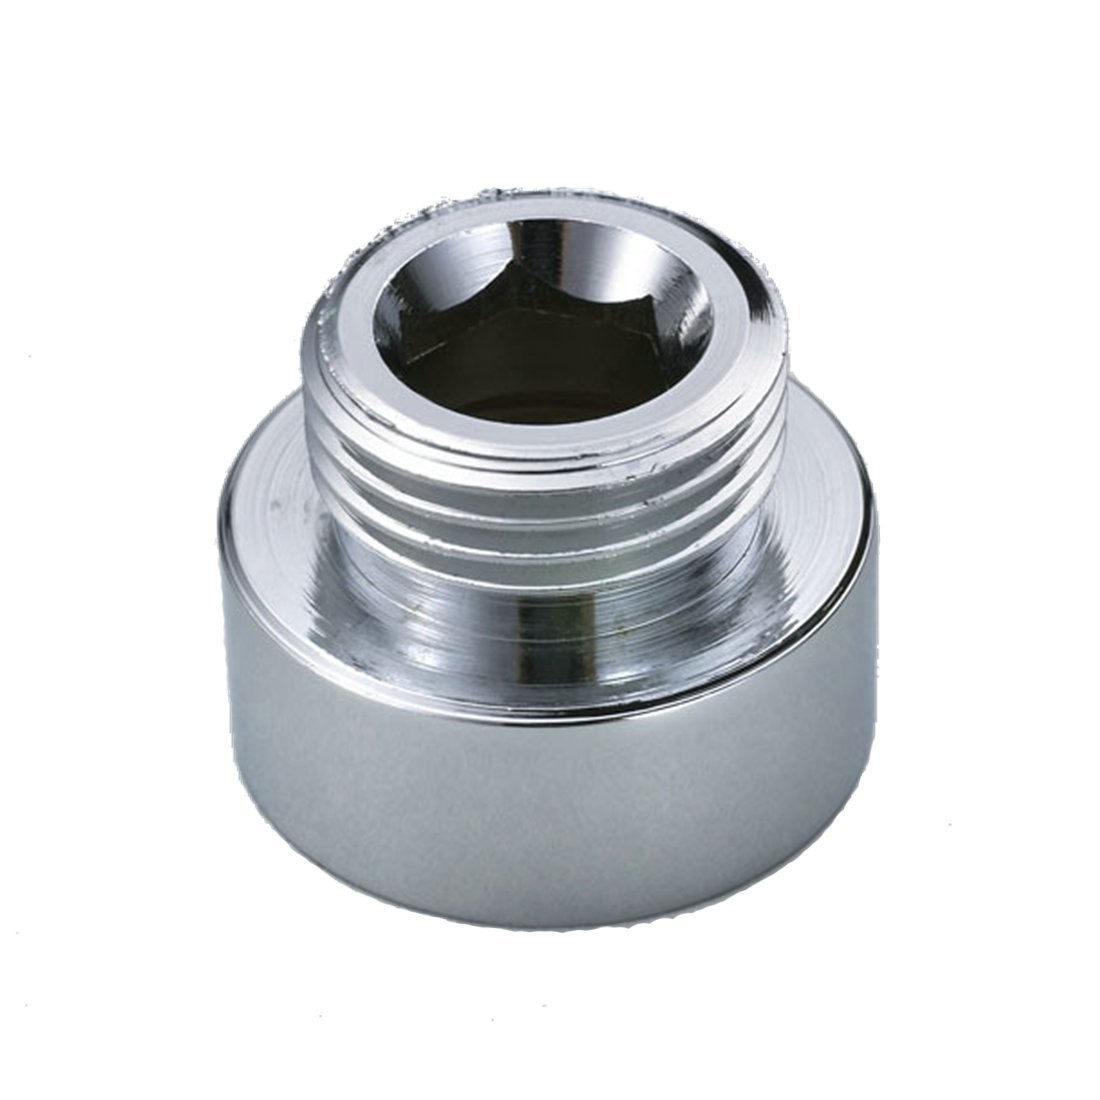 Shower Hose Reducer Chrome Plated Metal Adapter 3/4 FL To 1/2 ML ...